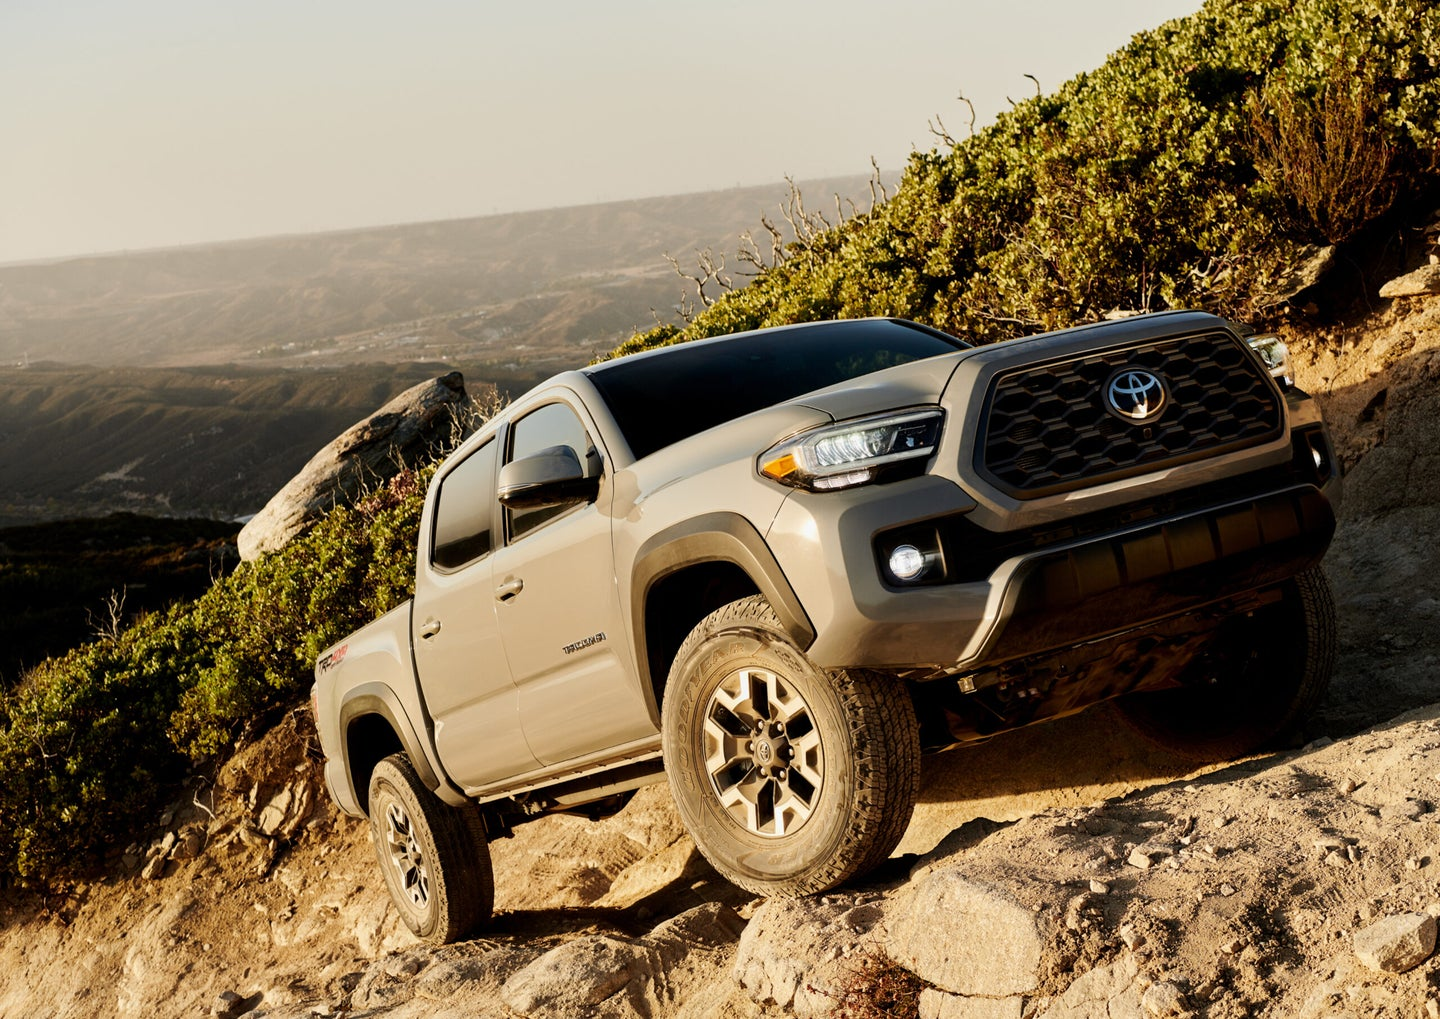 The Tacoma has a low tow and payload capacity rating.